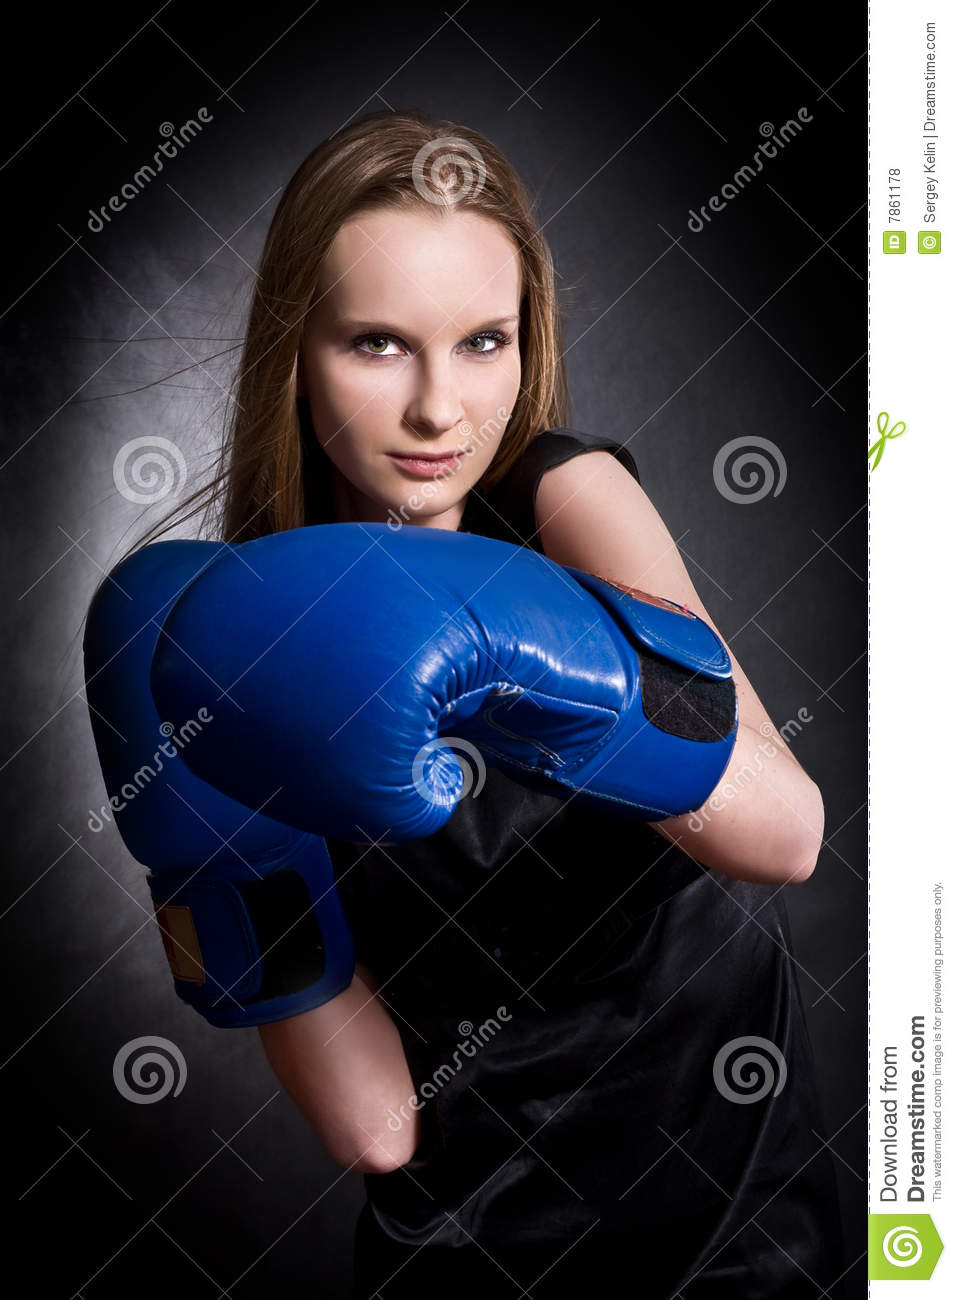 gants de fille de mode de boxe photo stock image du. Black Bedroom Furniture Sets. Home Design Ideas